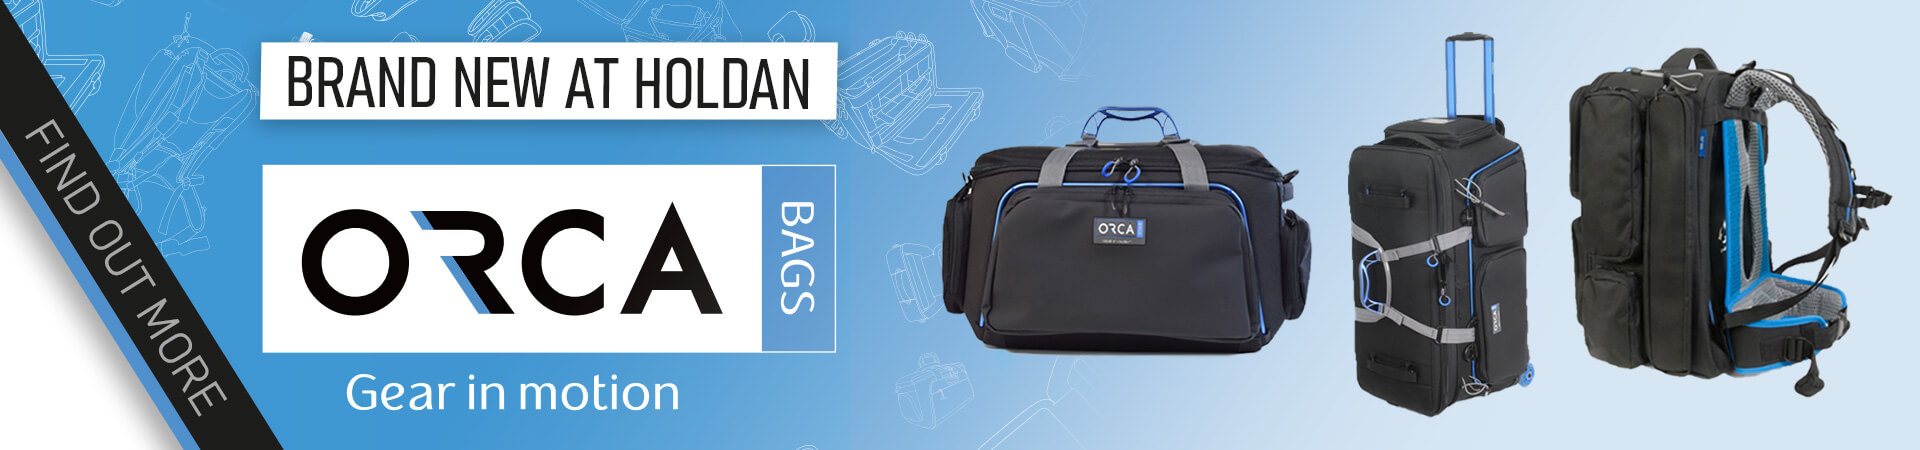 Orca Bags now available from Holdan